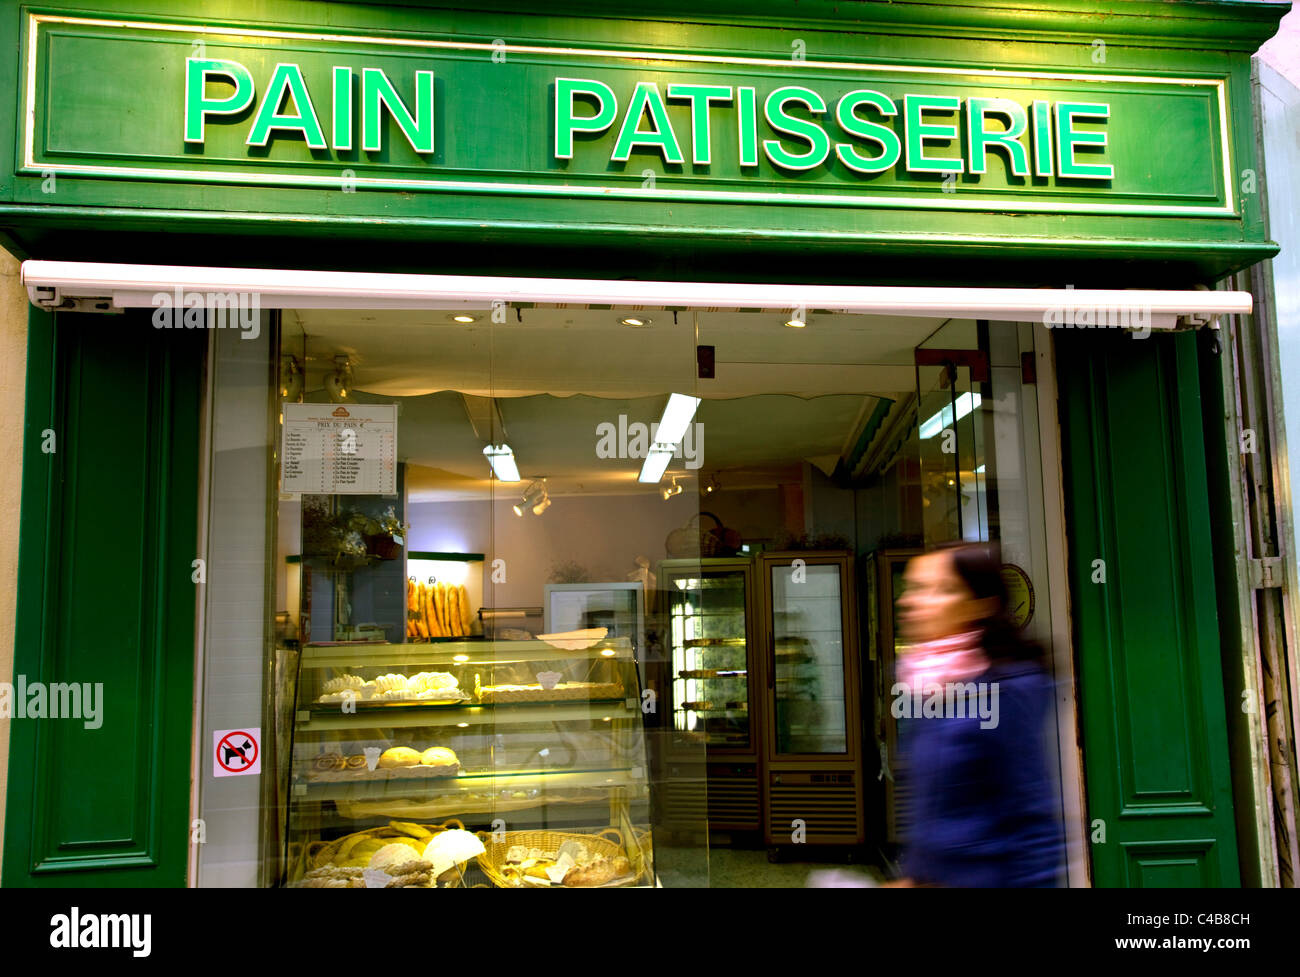 Arles; Bouches du Rhone, France; Young woman walking in front of a brightly coloured facade of a 'pain patisserie' Stock Photo